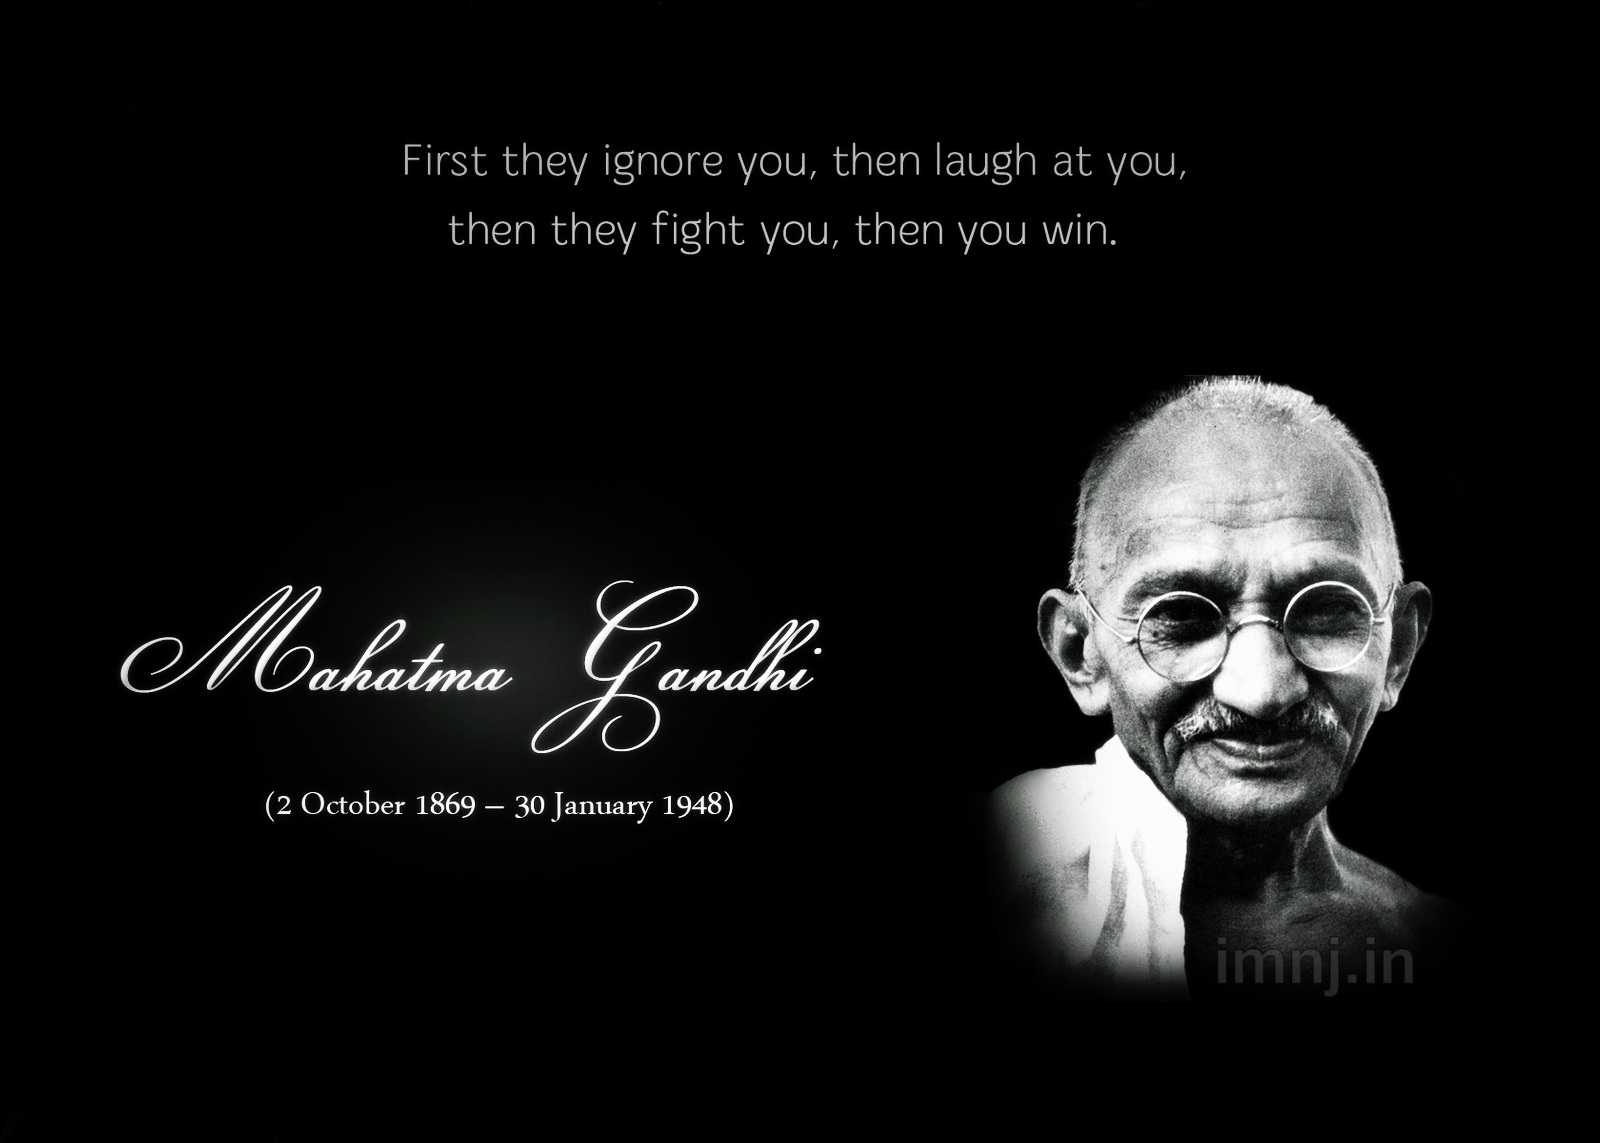 Gandhi Famous Quotes About Life